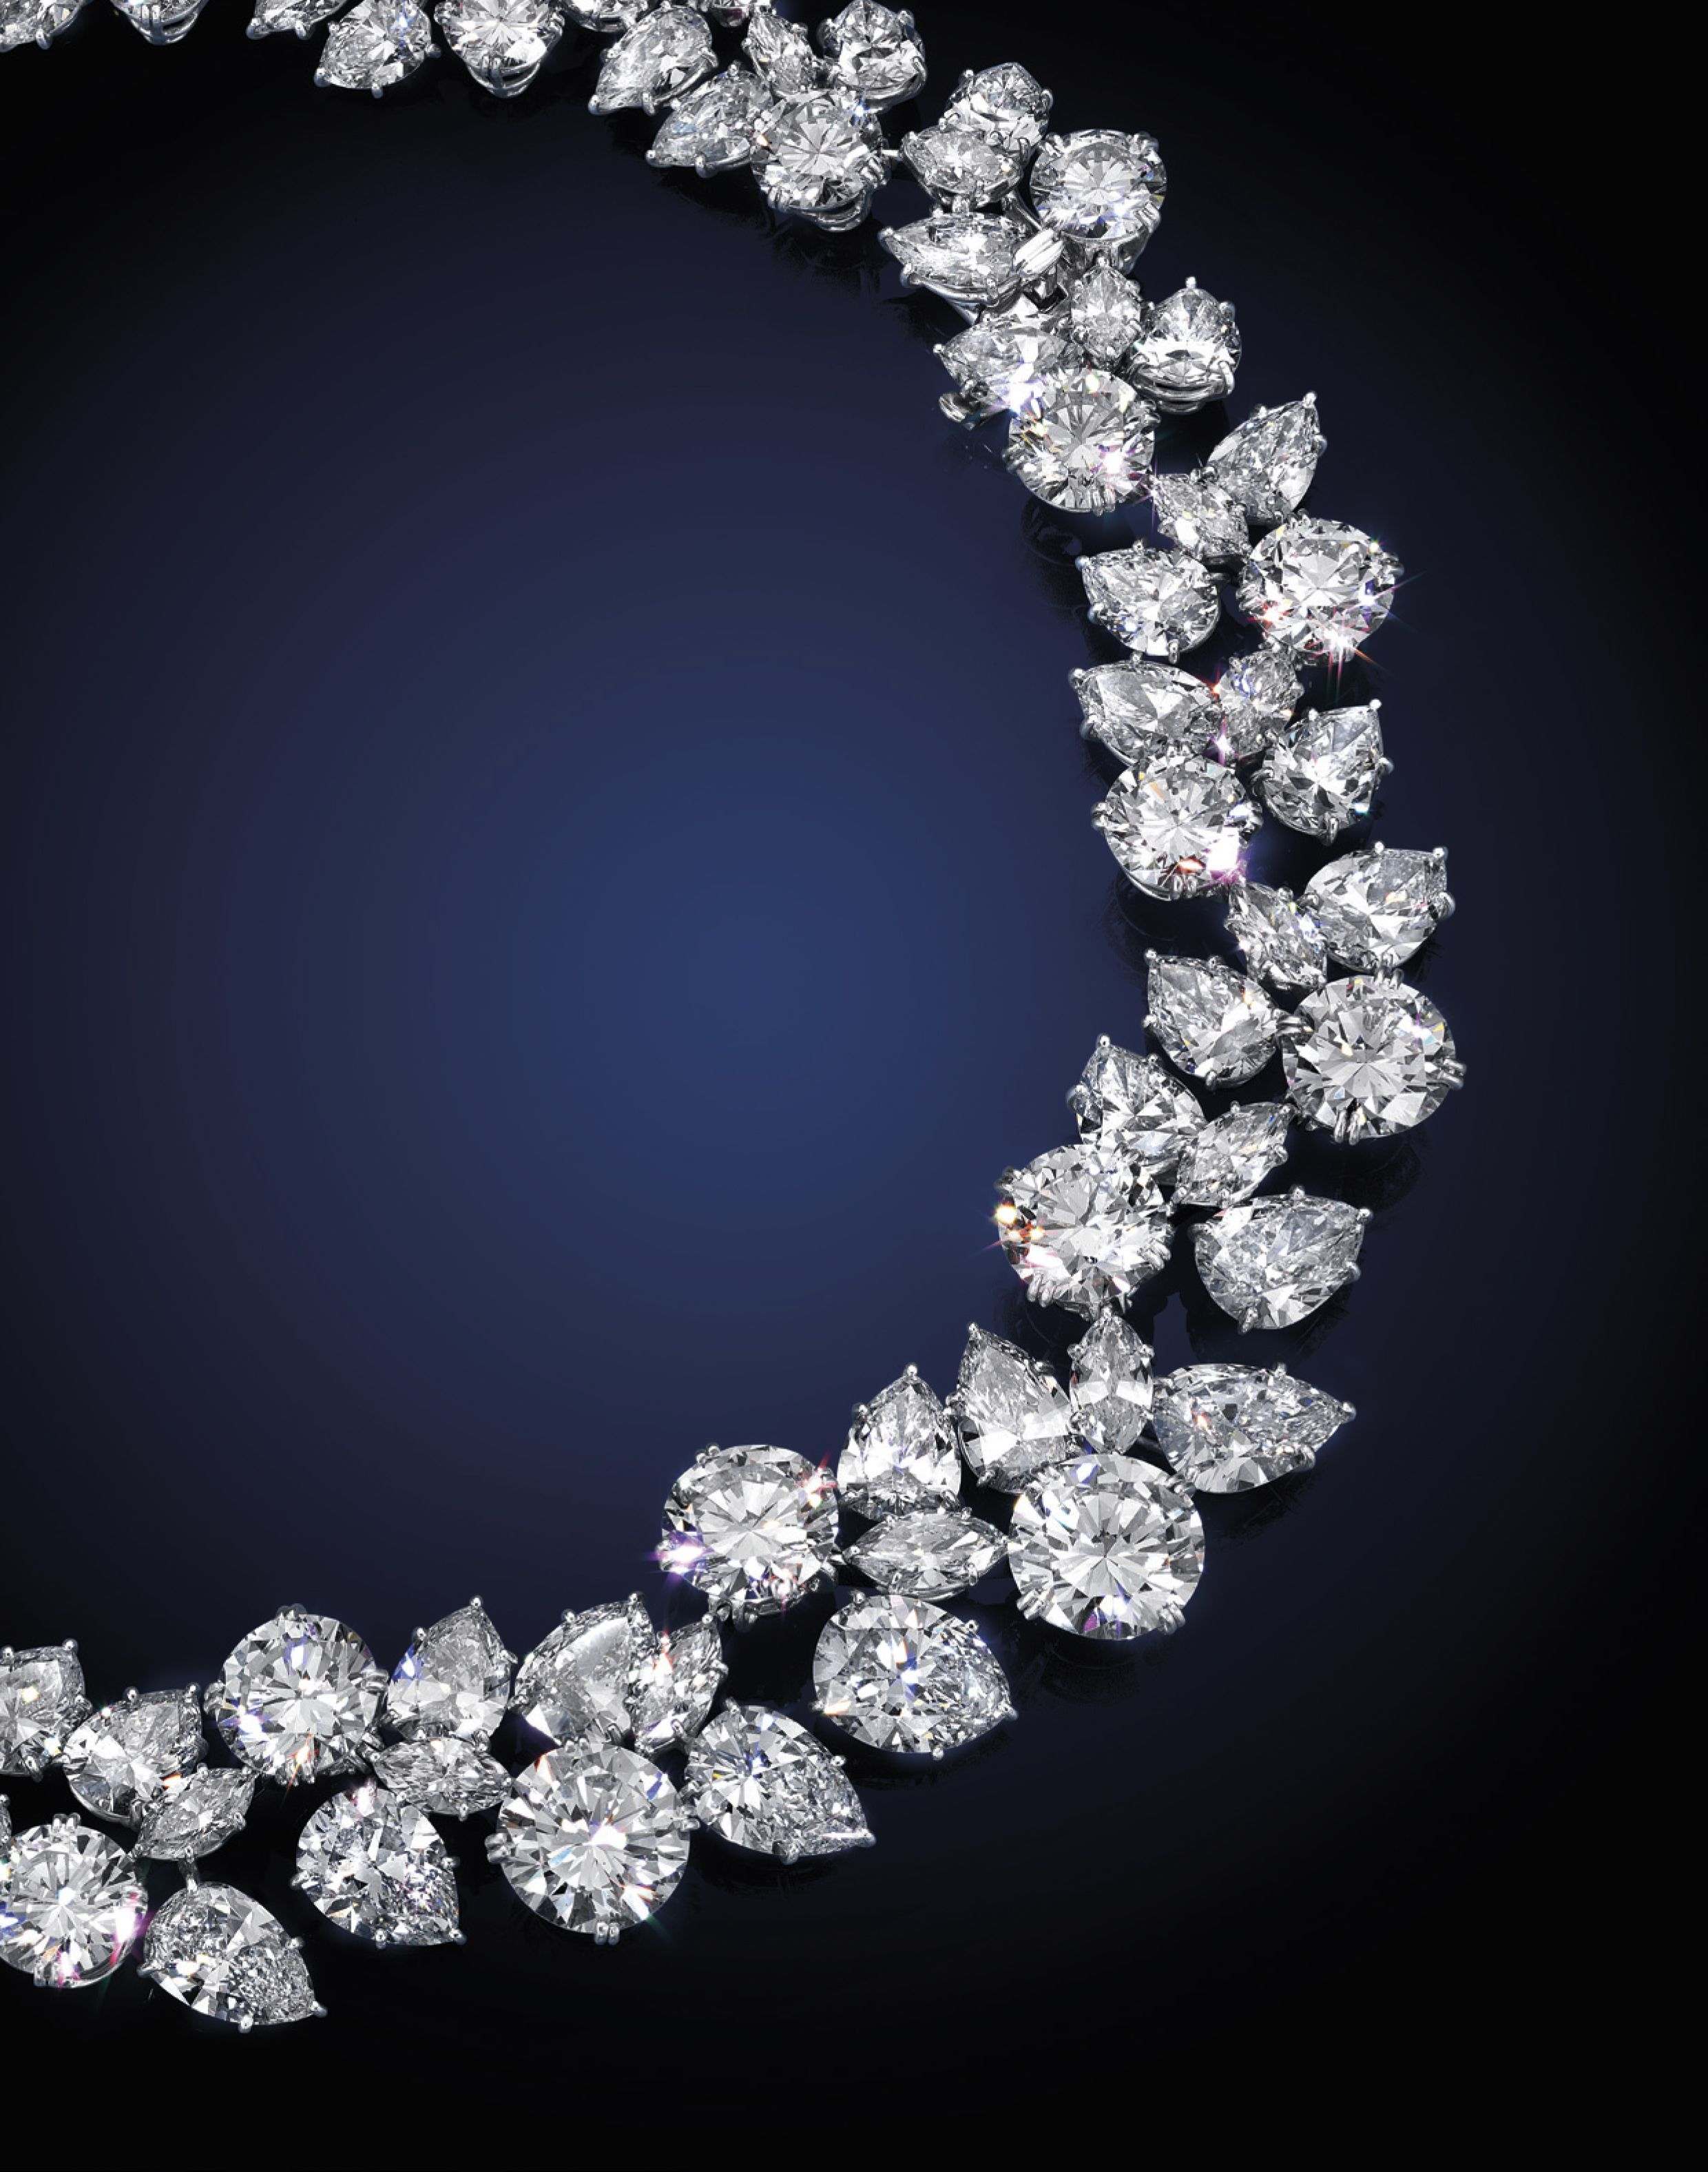 An Exquisite Diamond Cluster Wreath Necklace,harry Regarding Most Recent Diamond Wreath Necklaces (View 8 of 25)